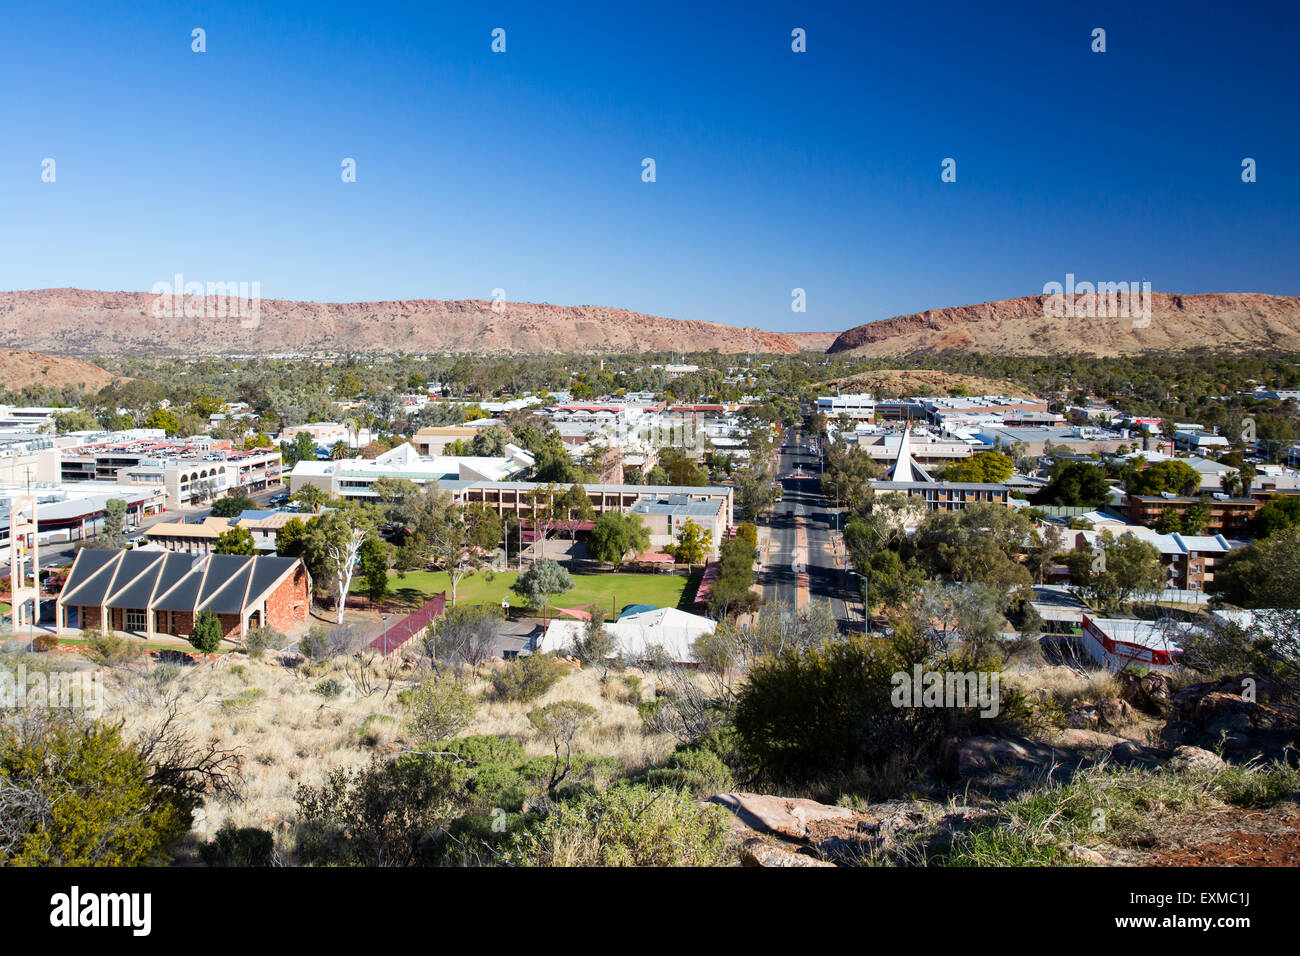 View from Anzac Hill down Hartley St on a fine winter's day in Alice Springs, Northern Territory, Australia - Stock Image